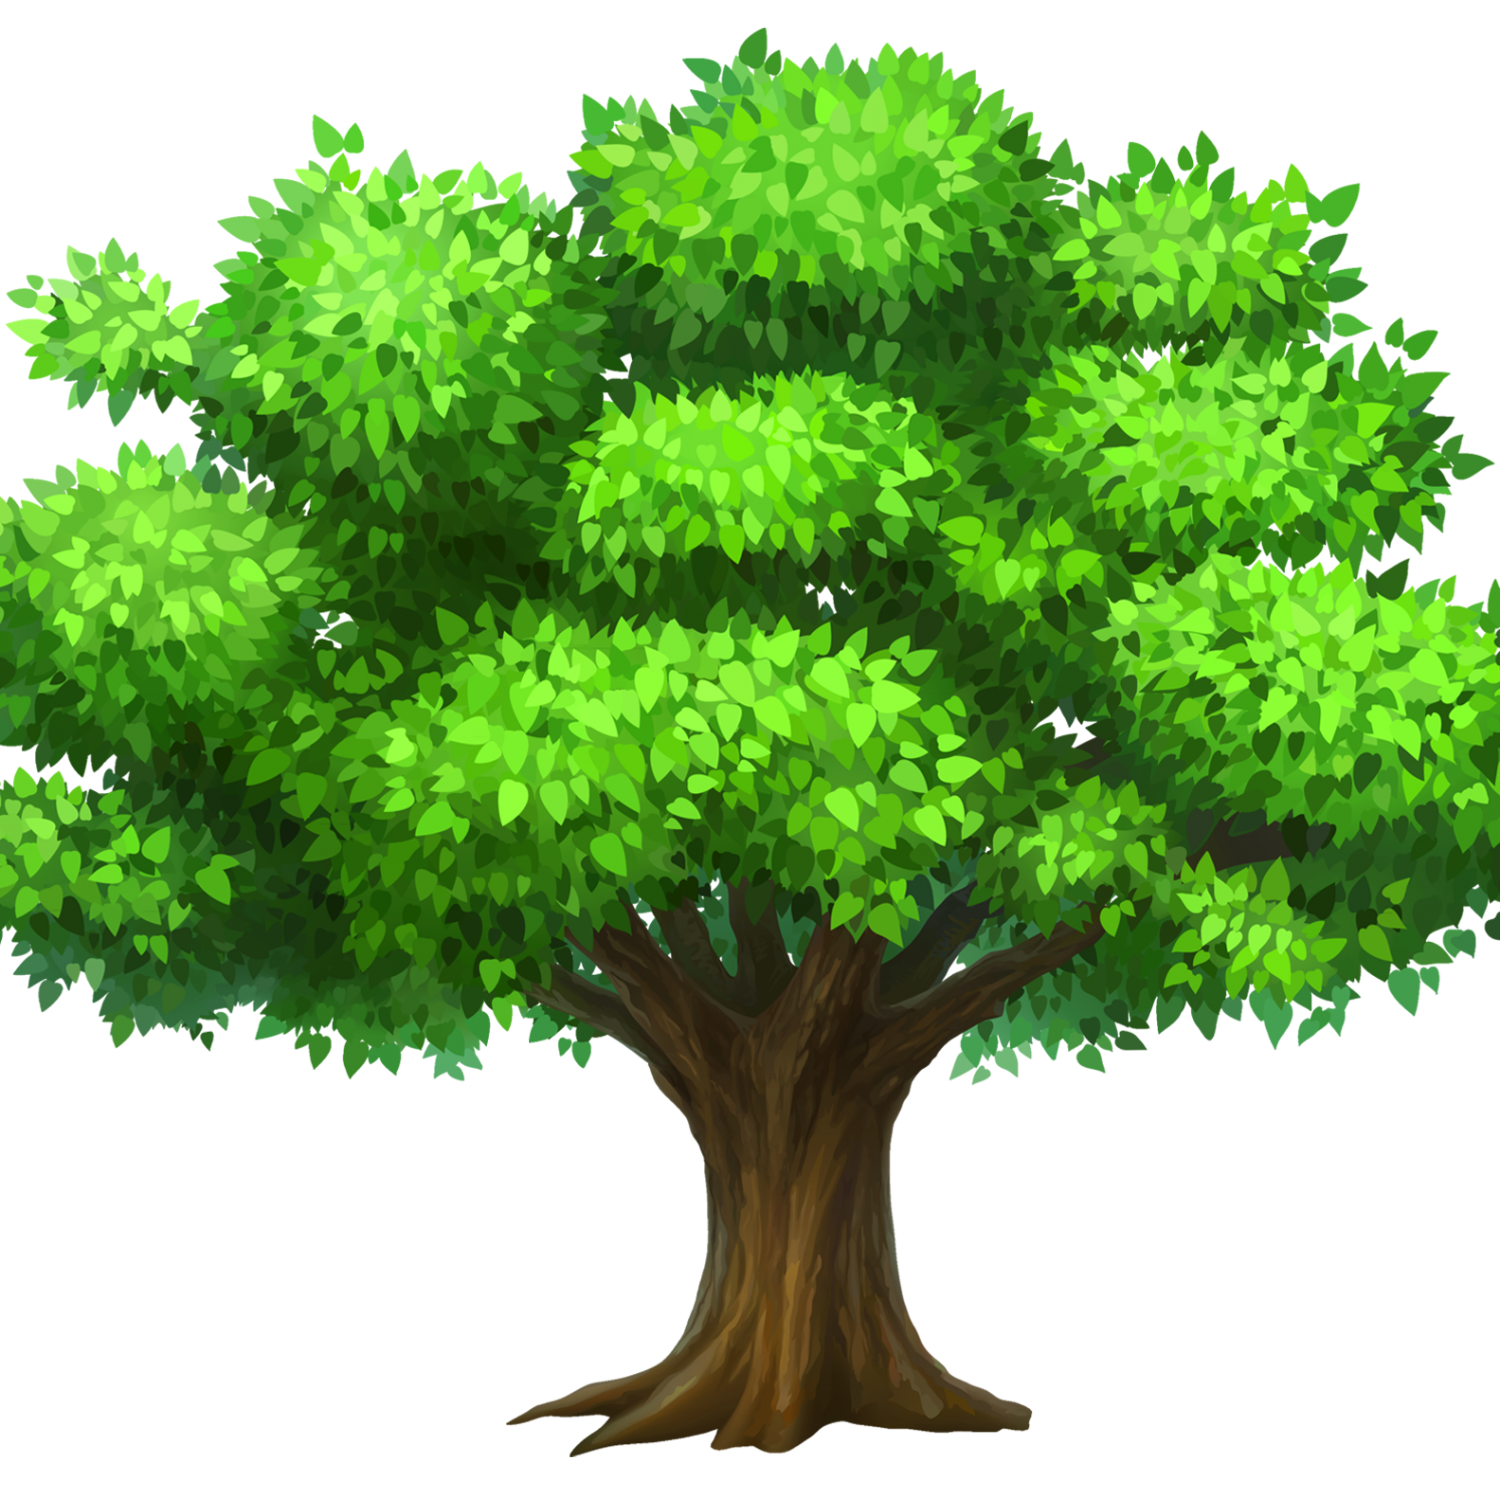 Planting tree clipart image freeuse Tree Clip Art, tree-planting clip art - Mehmetcetinsozler image freeuse